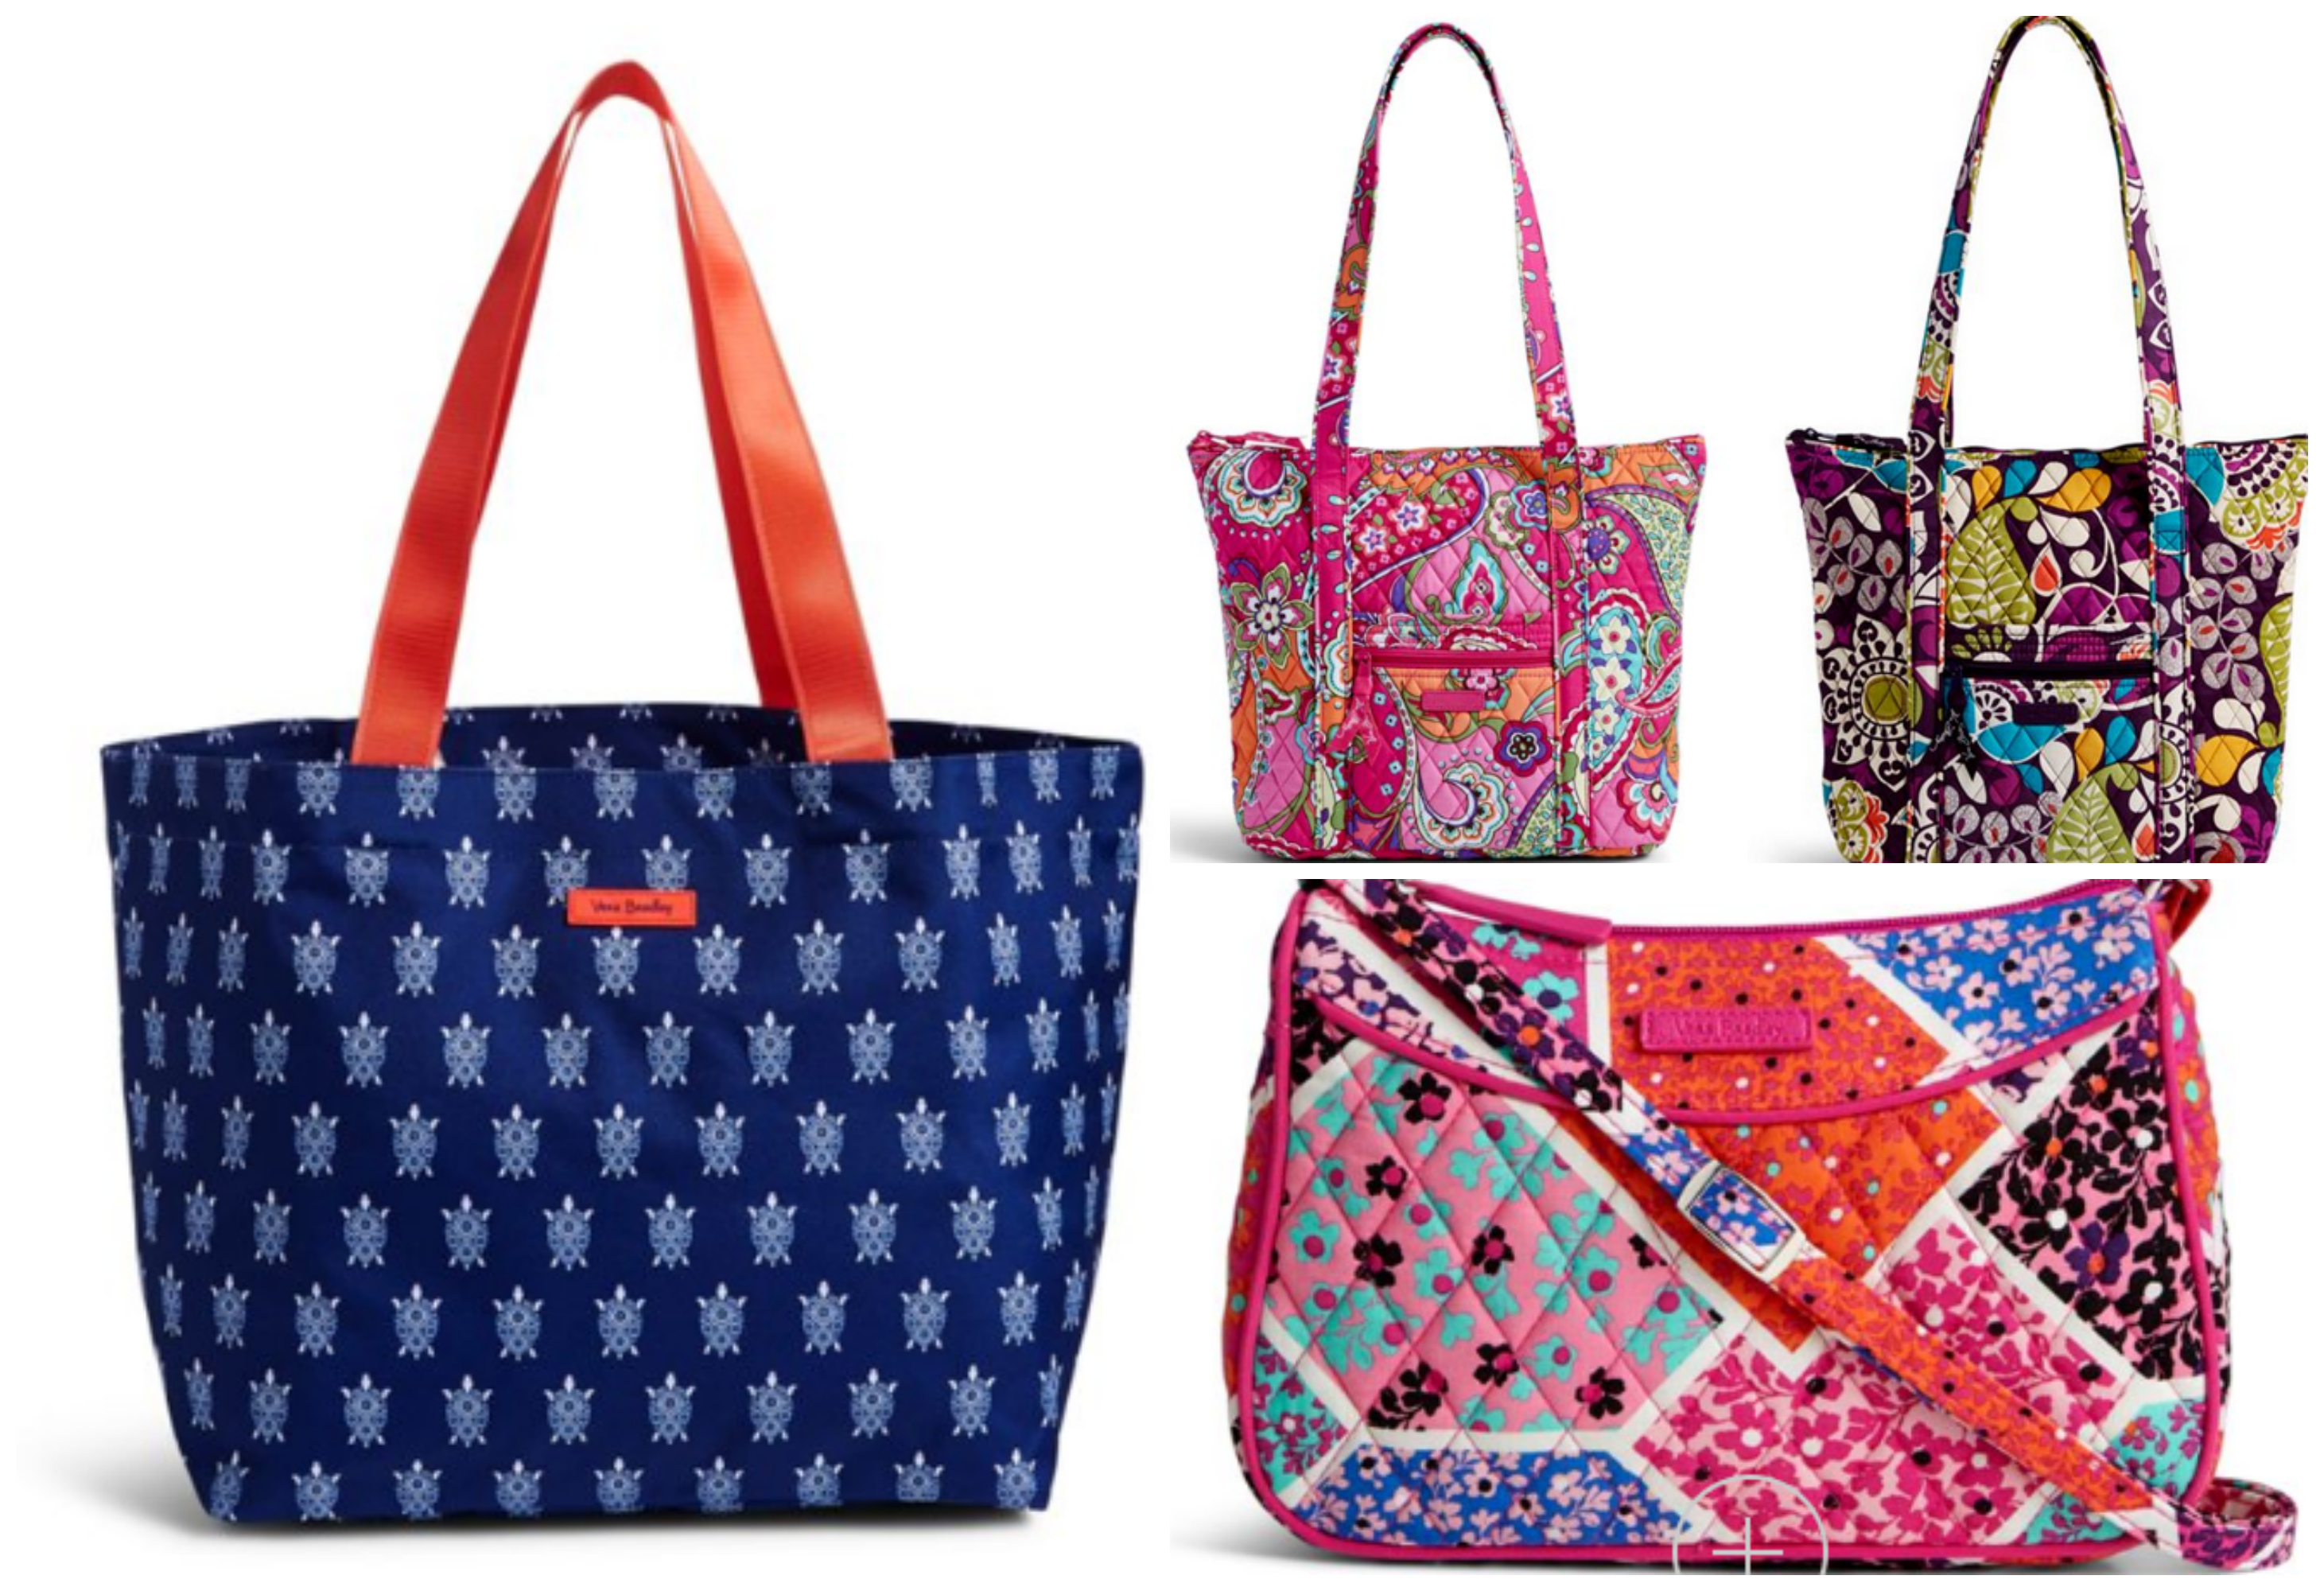 Vera Bradley Outlet  30% Off + Free Shipping    Southern Savers 189a7d7a47e6a